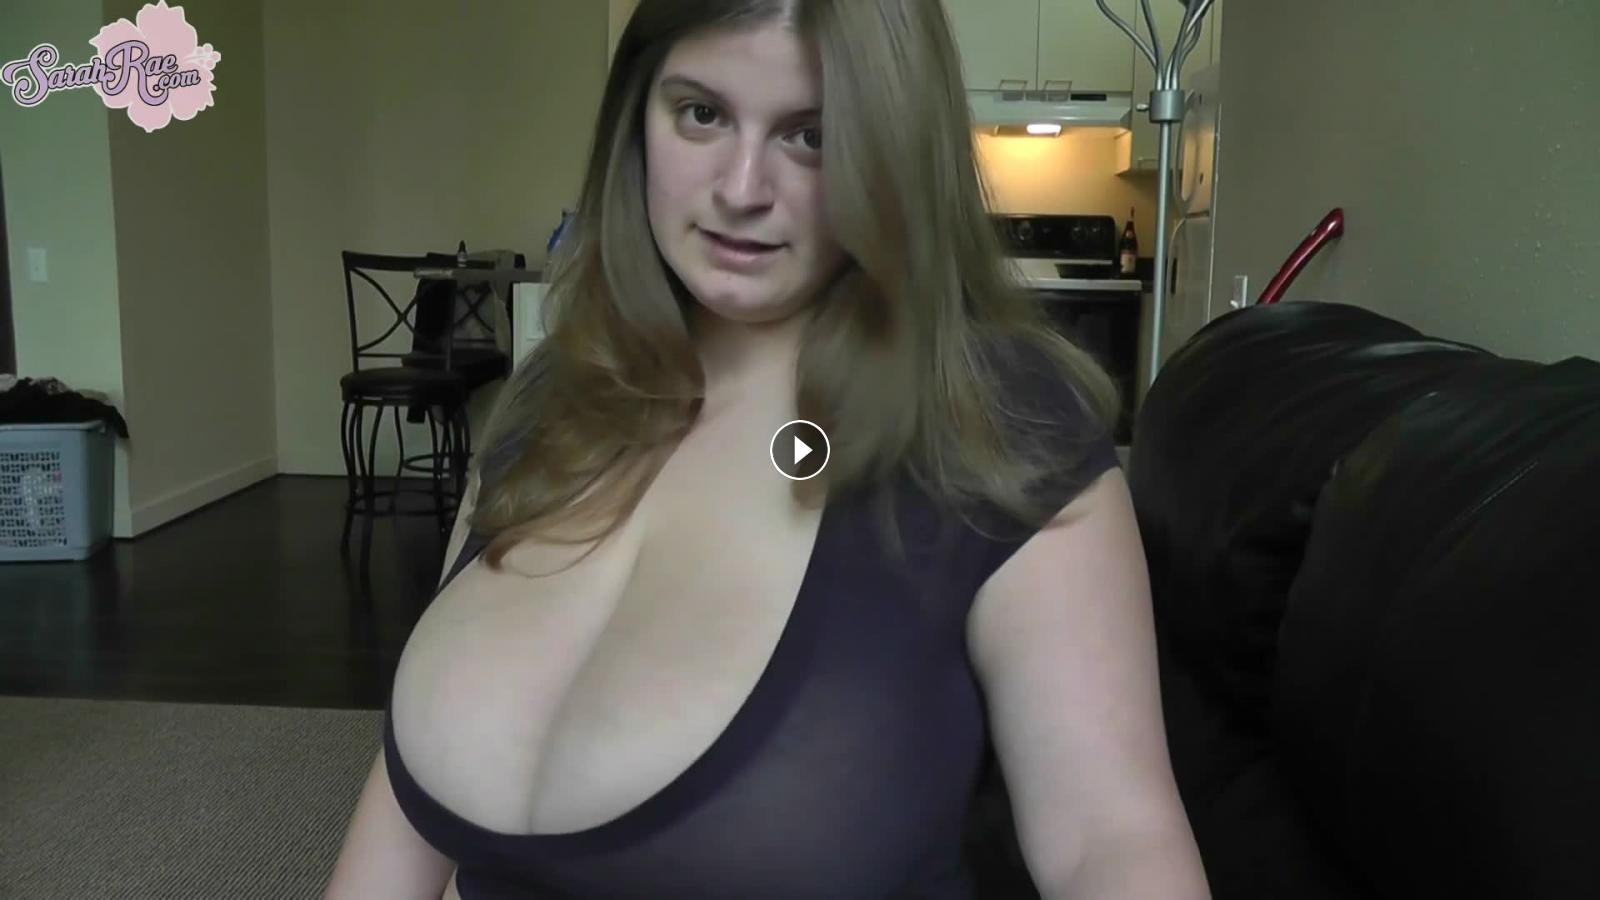 Sarah Rae - Mom Catches You Staring